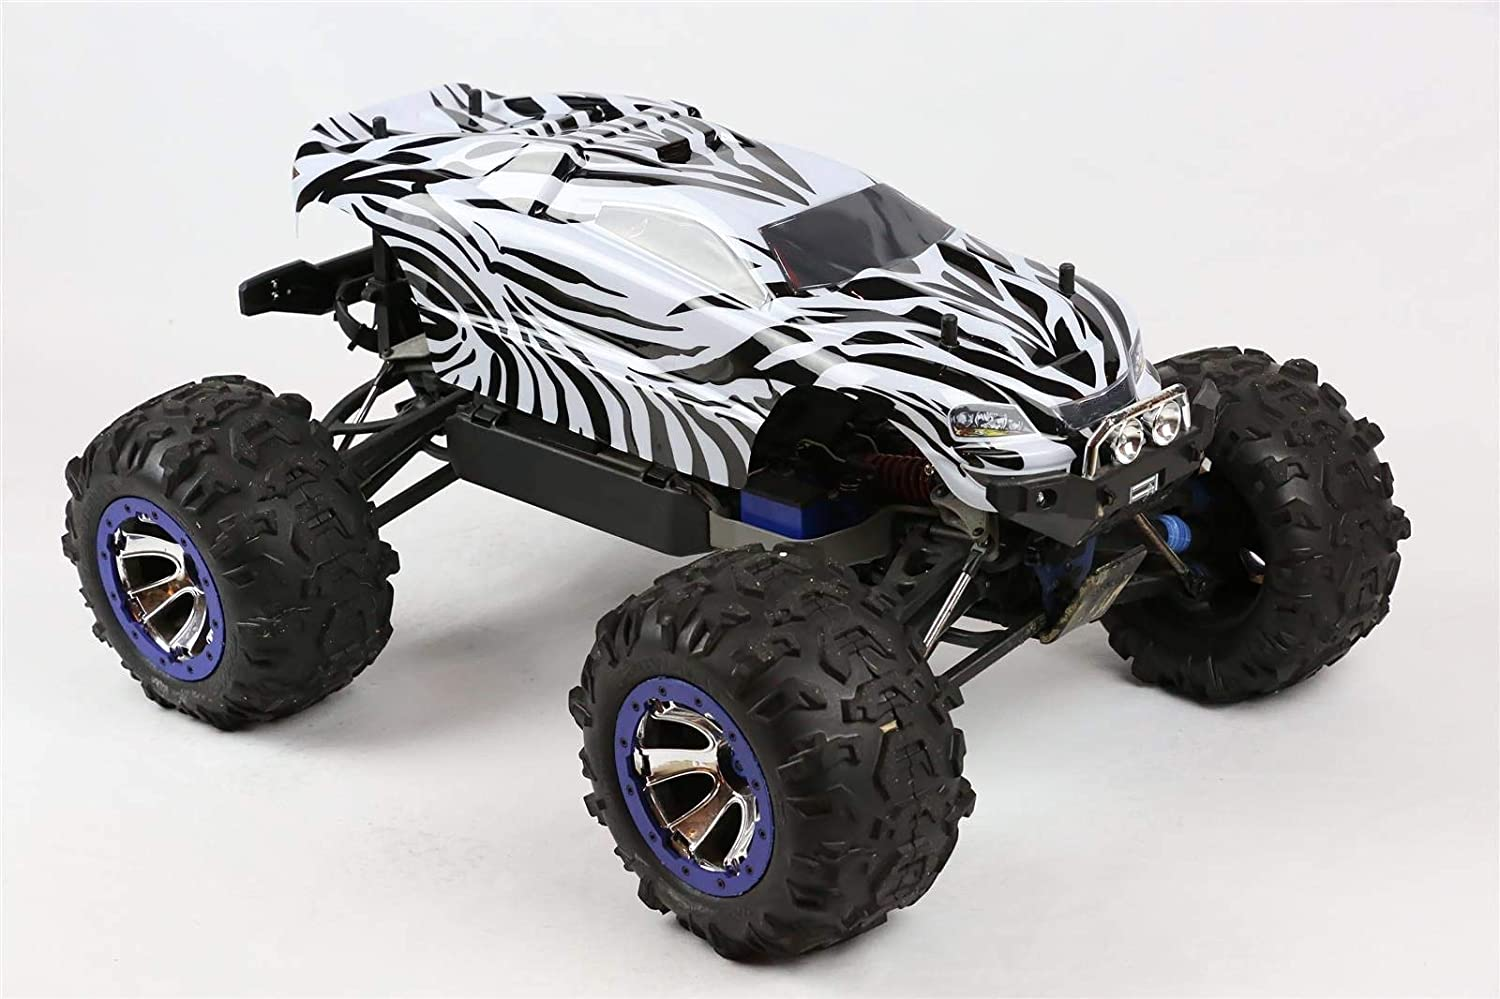 SummitLink Compatible Custom Body Zebra Style Replacement for 1/10 Scale RC Car or Truck (Truck not Included) SUE-Z-02